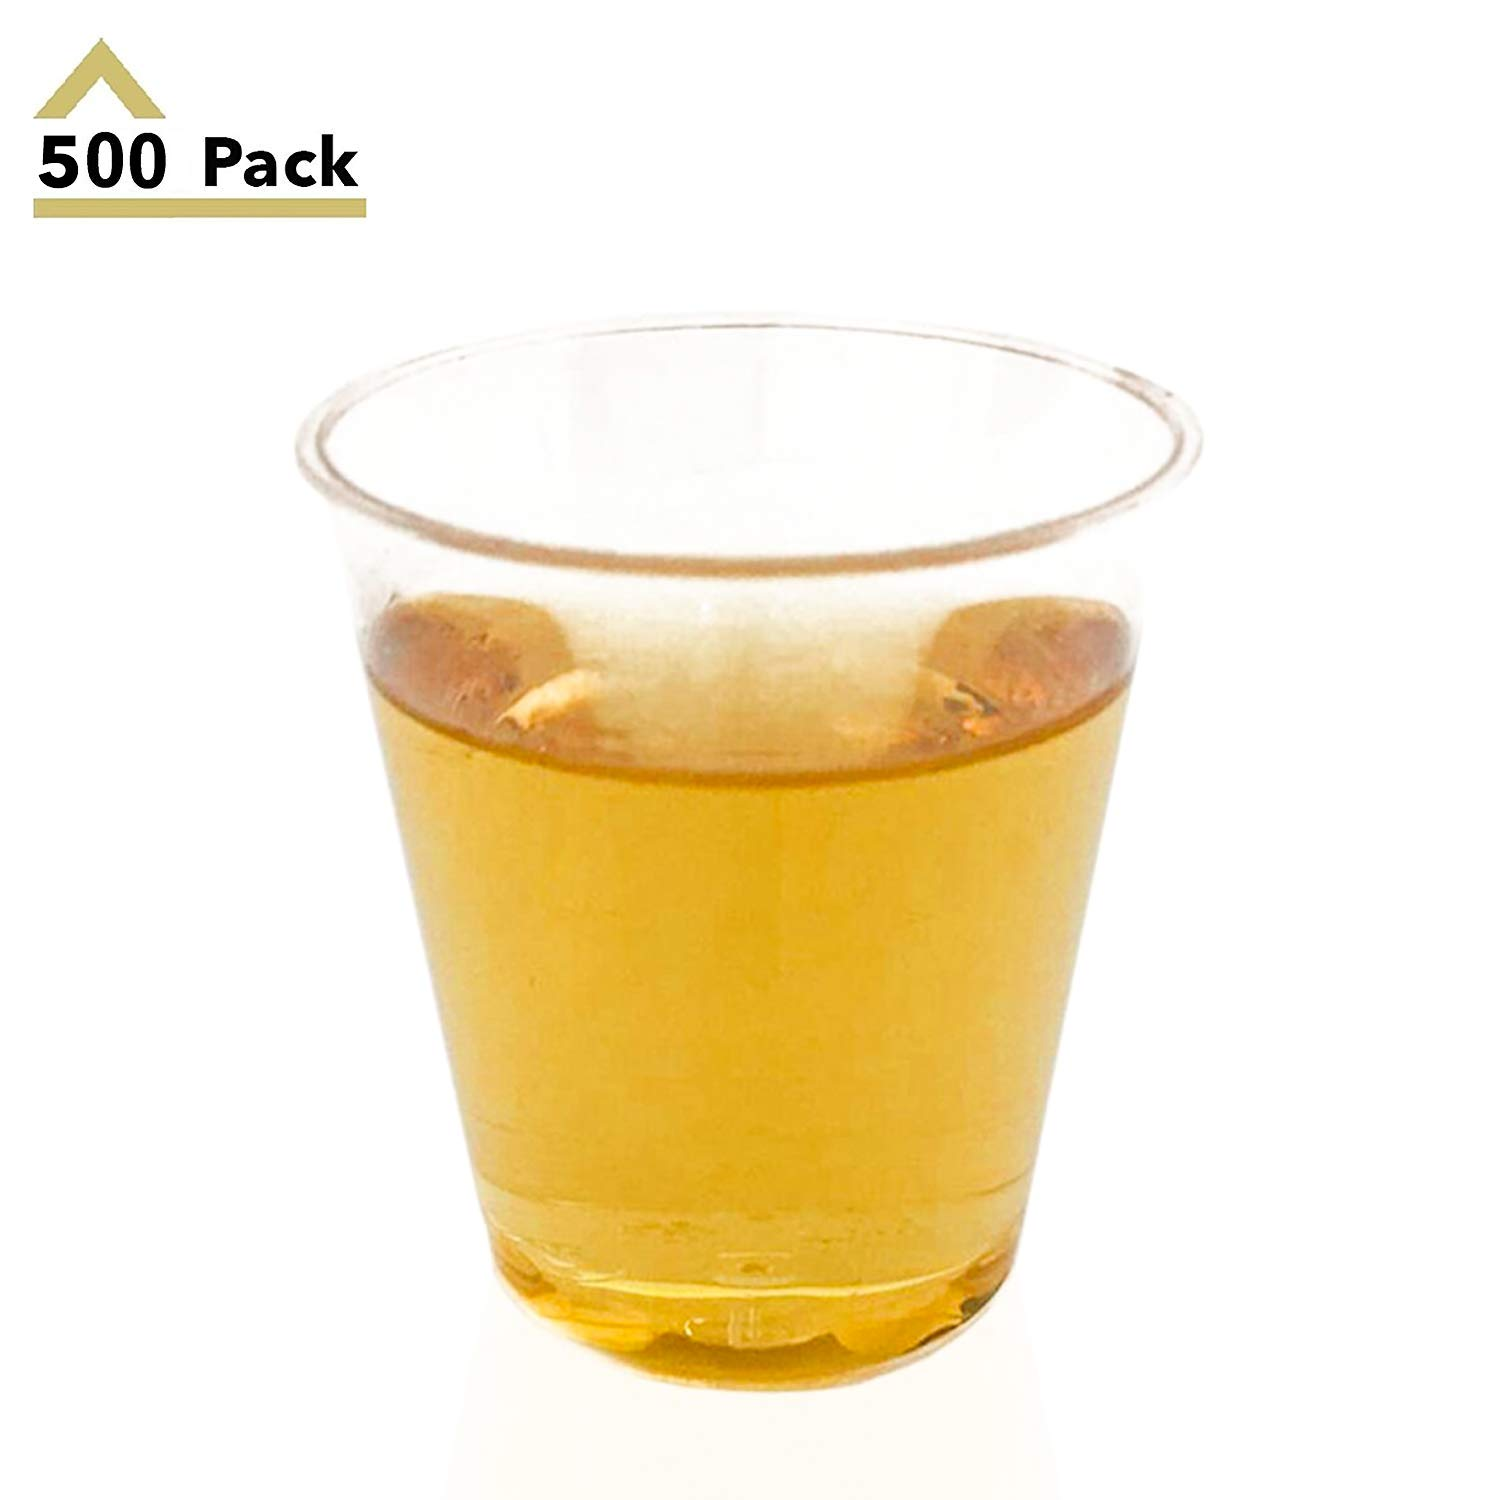 500 Pack Clear Plastic Shot Glasses 1.5oz Disposable Shot Glass – Small Party Cups Great for Whiskey Shooters and Wine Tasting – Stock Your Home